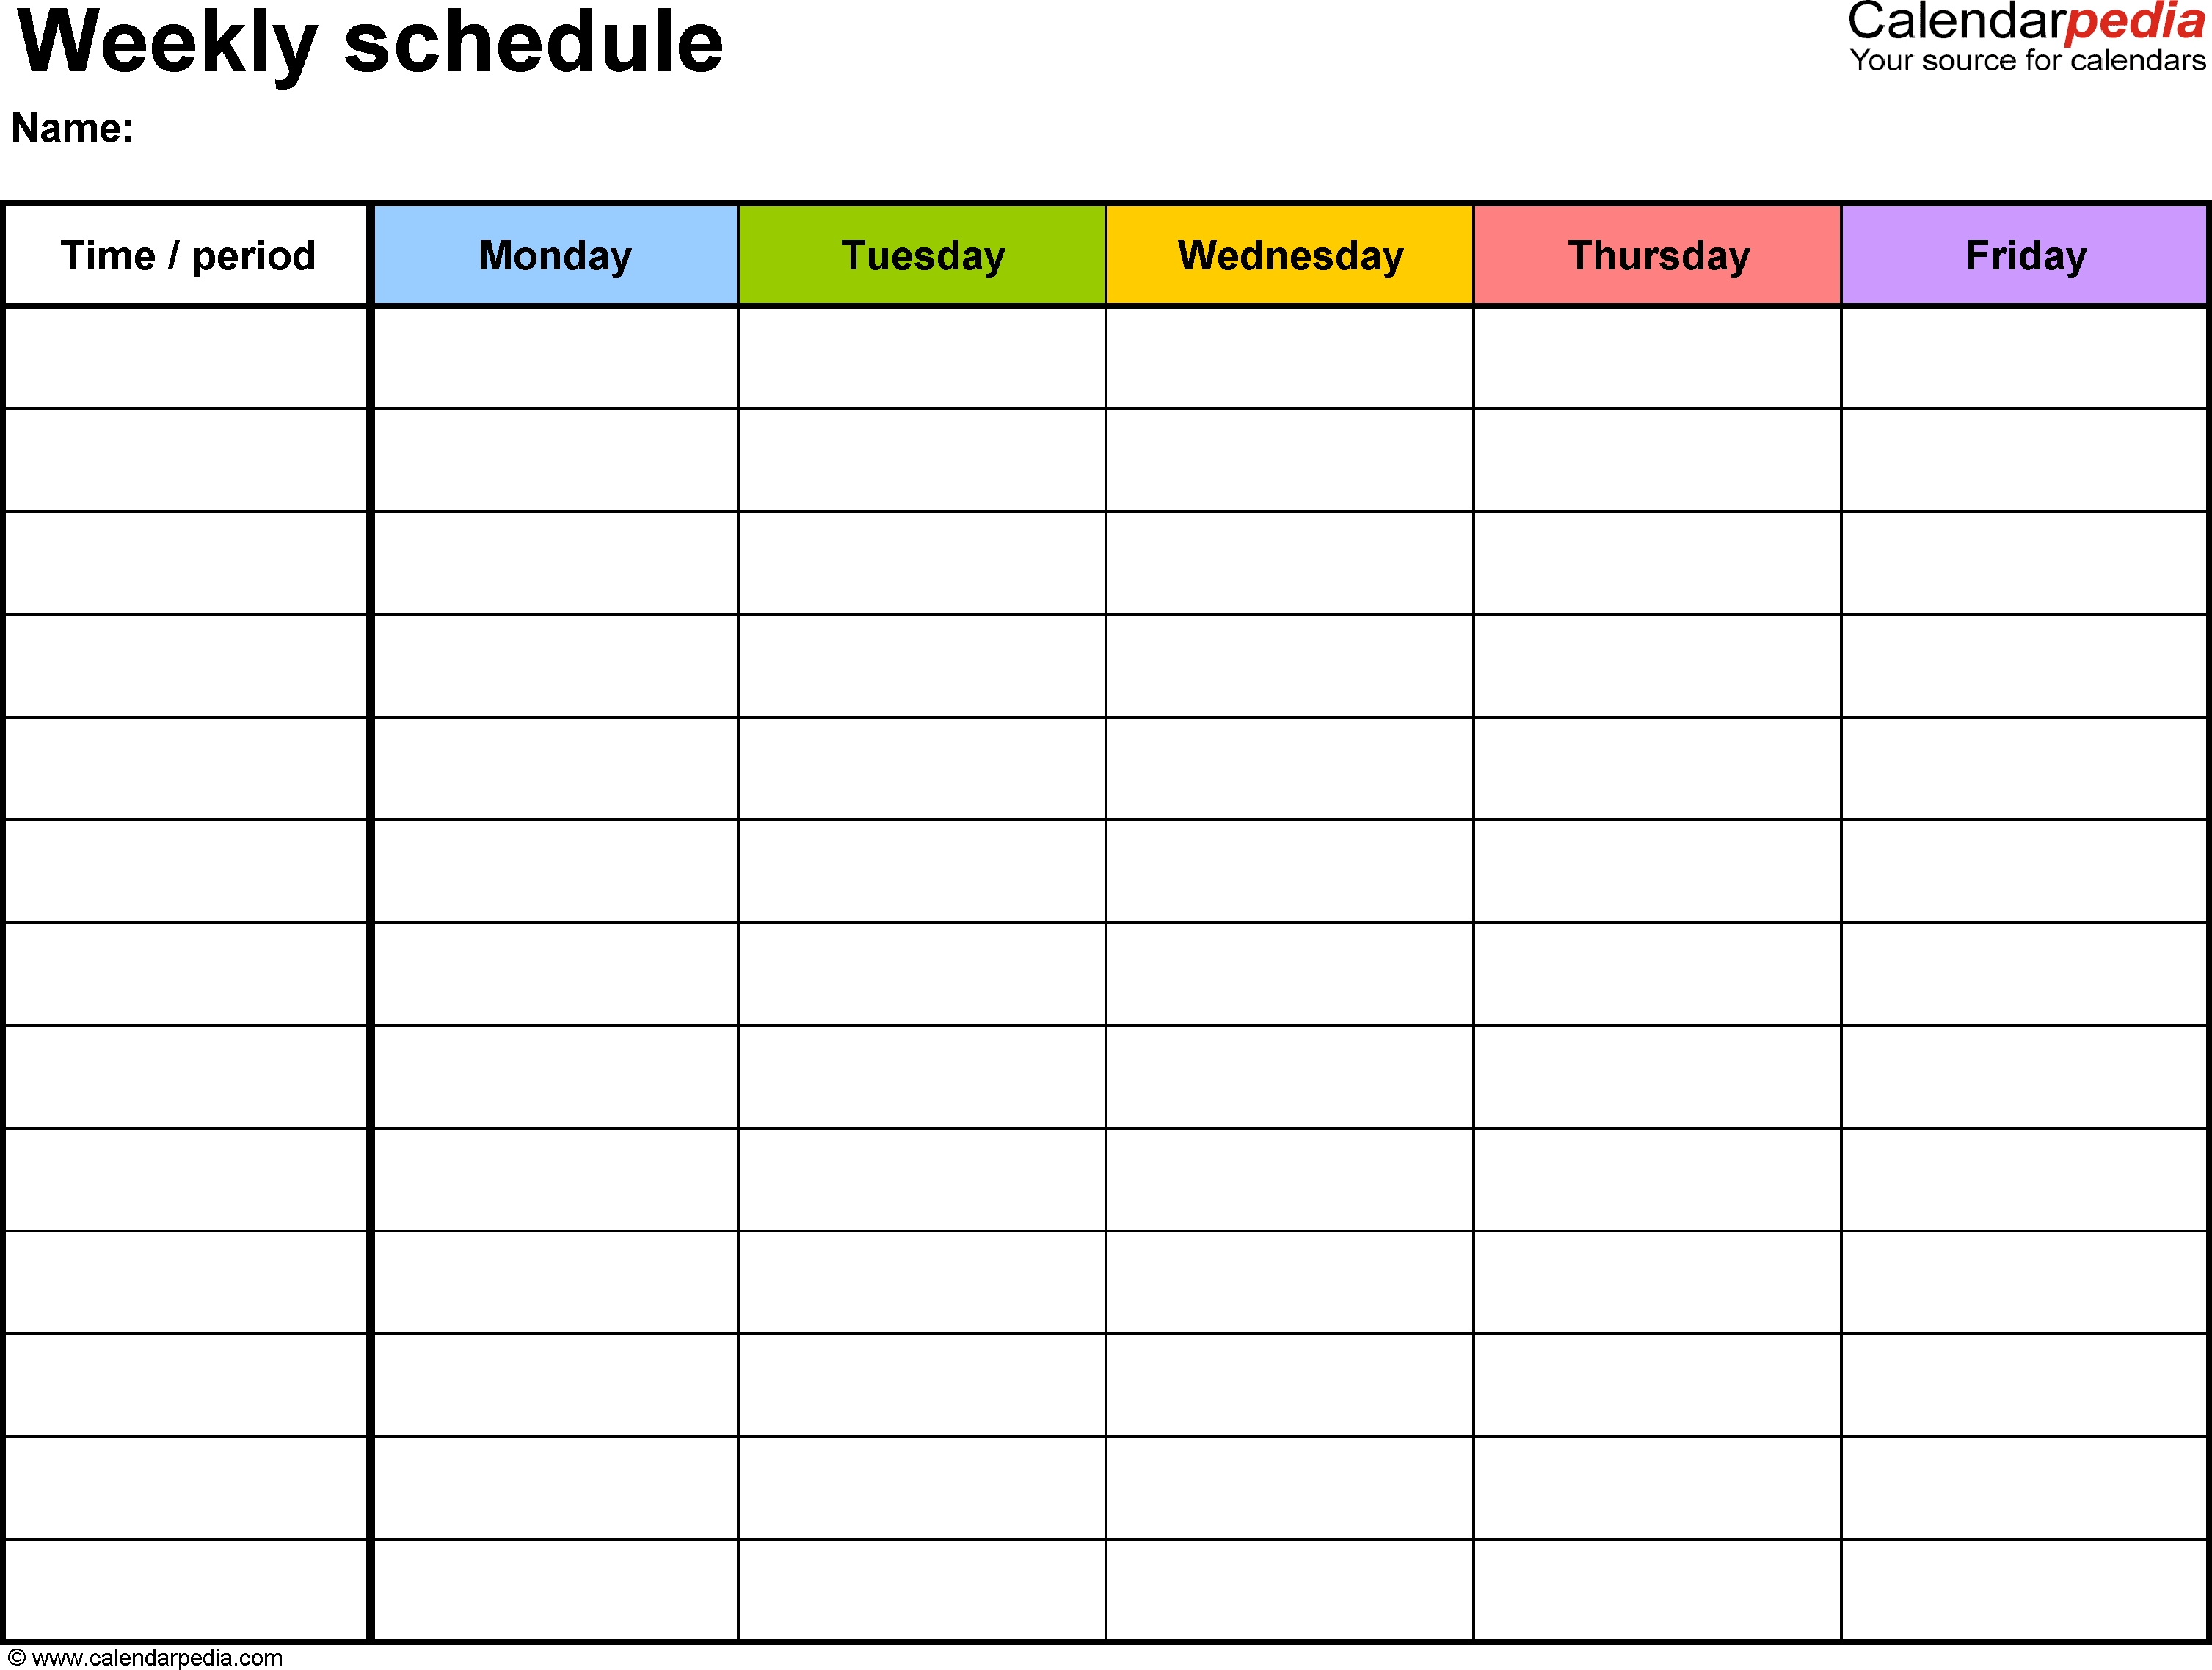 Free Weekly Schedule Templates For Excel - 18 Templates for Blank 4 Week Calendar Printable